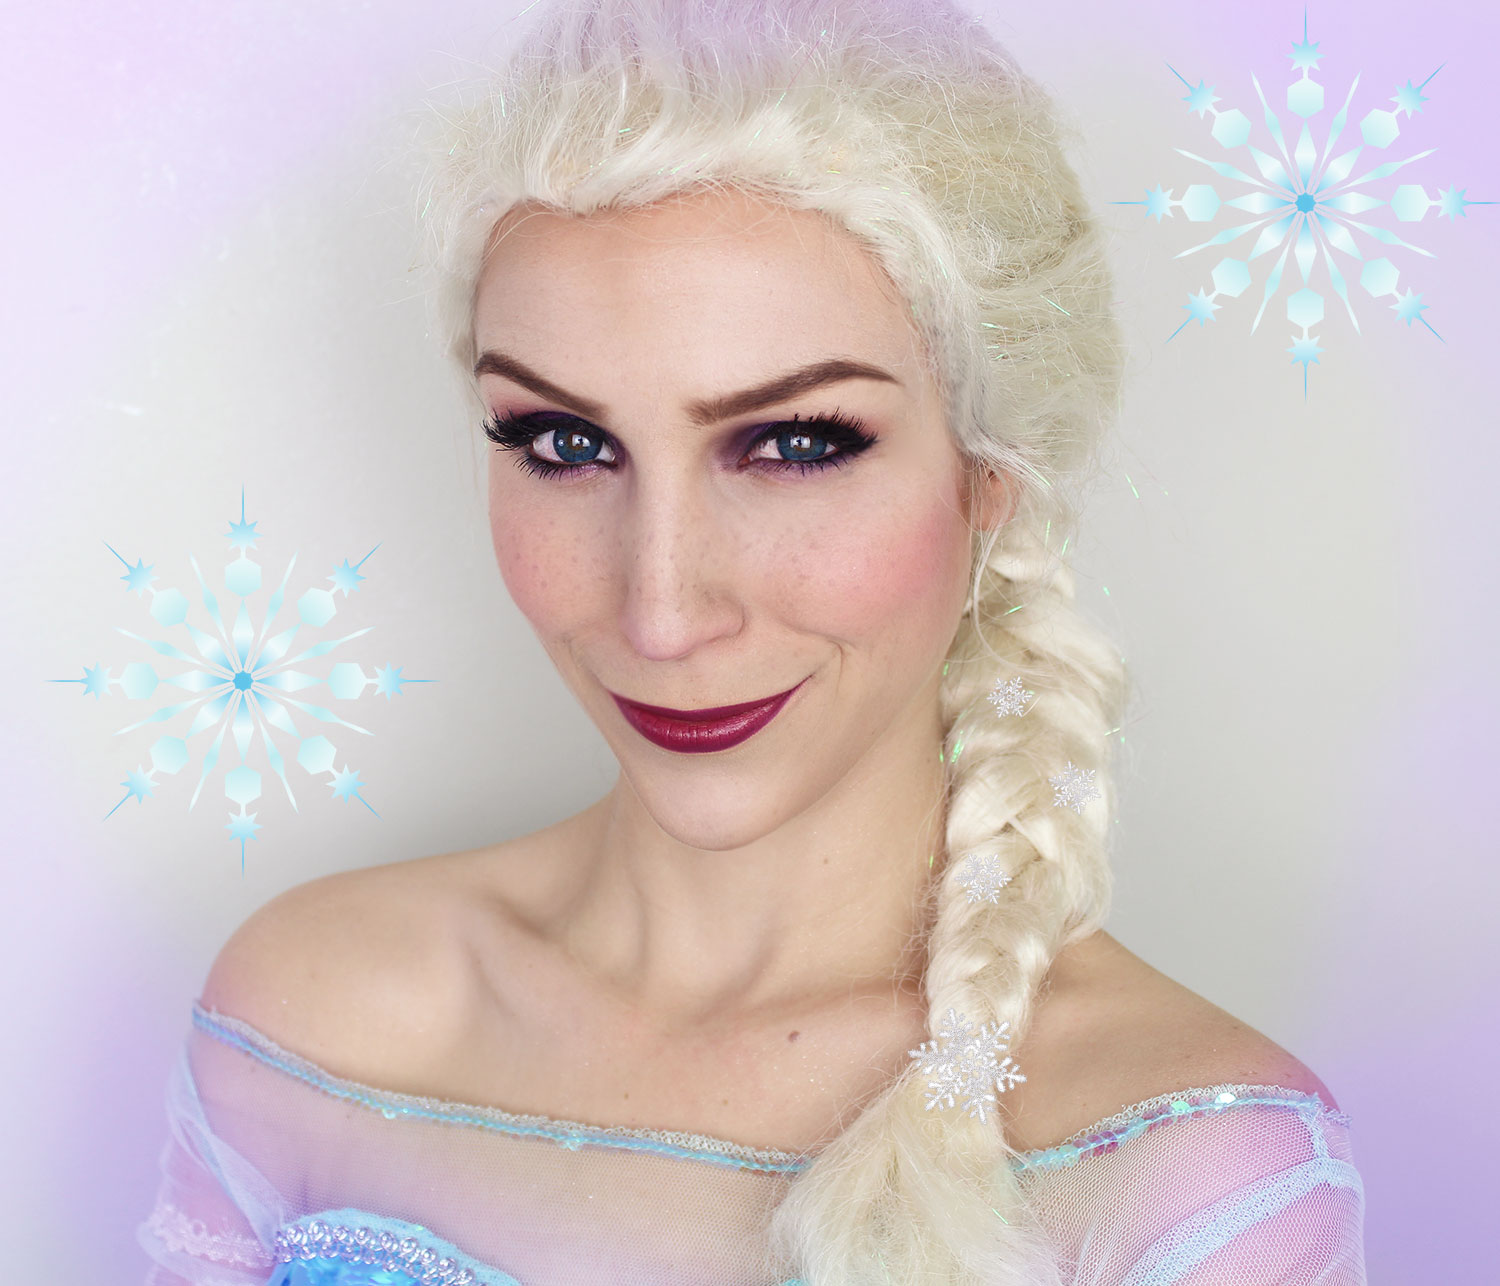 Maquillage d\u0027Halloween  Elsa / La Reine des Neiges